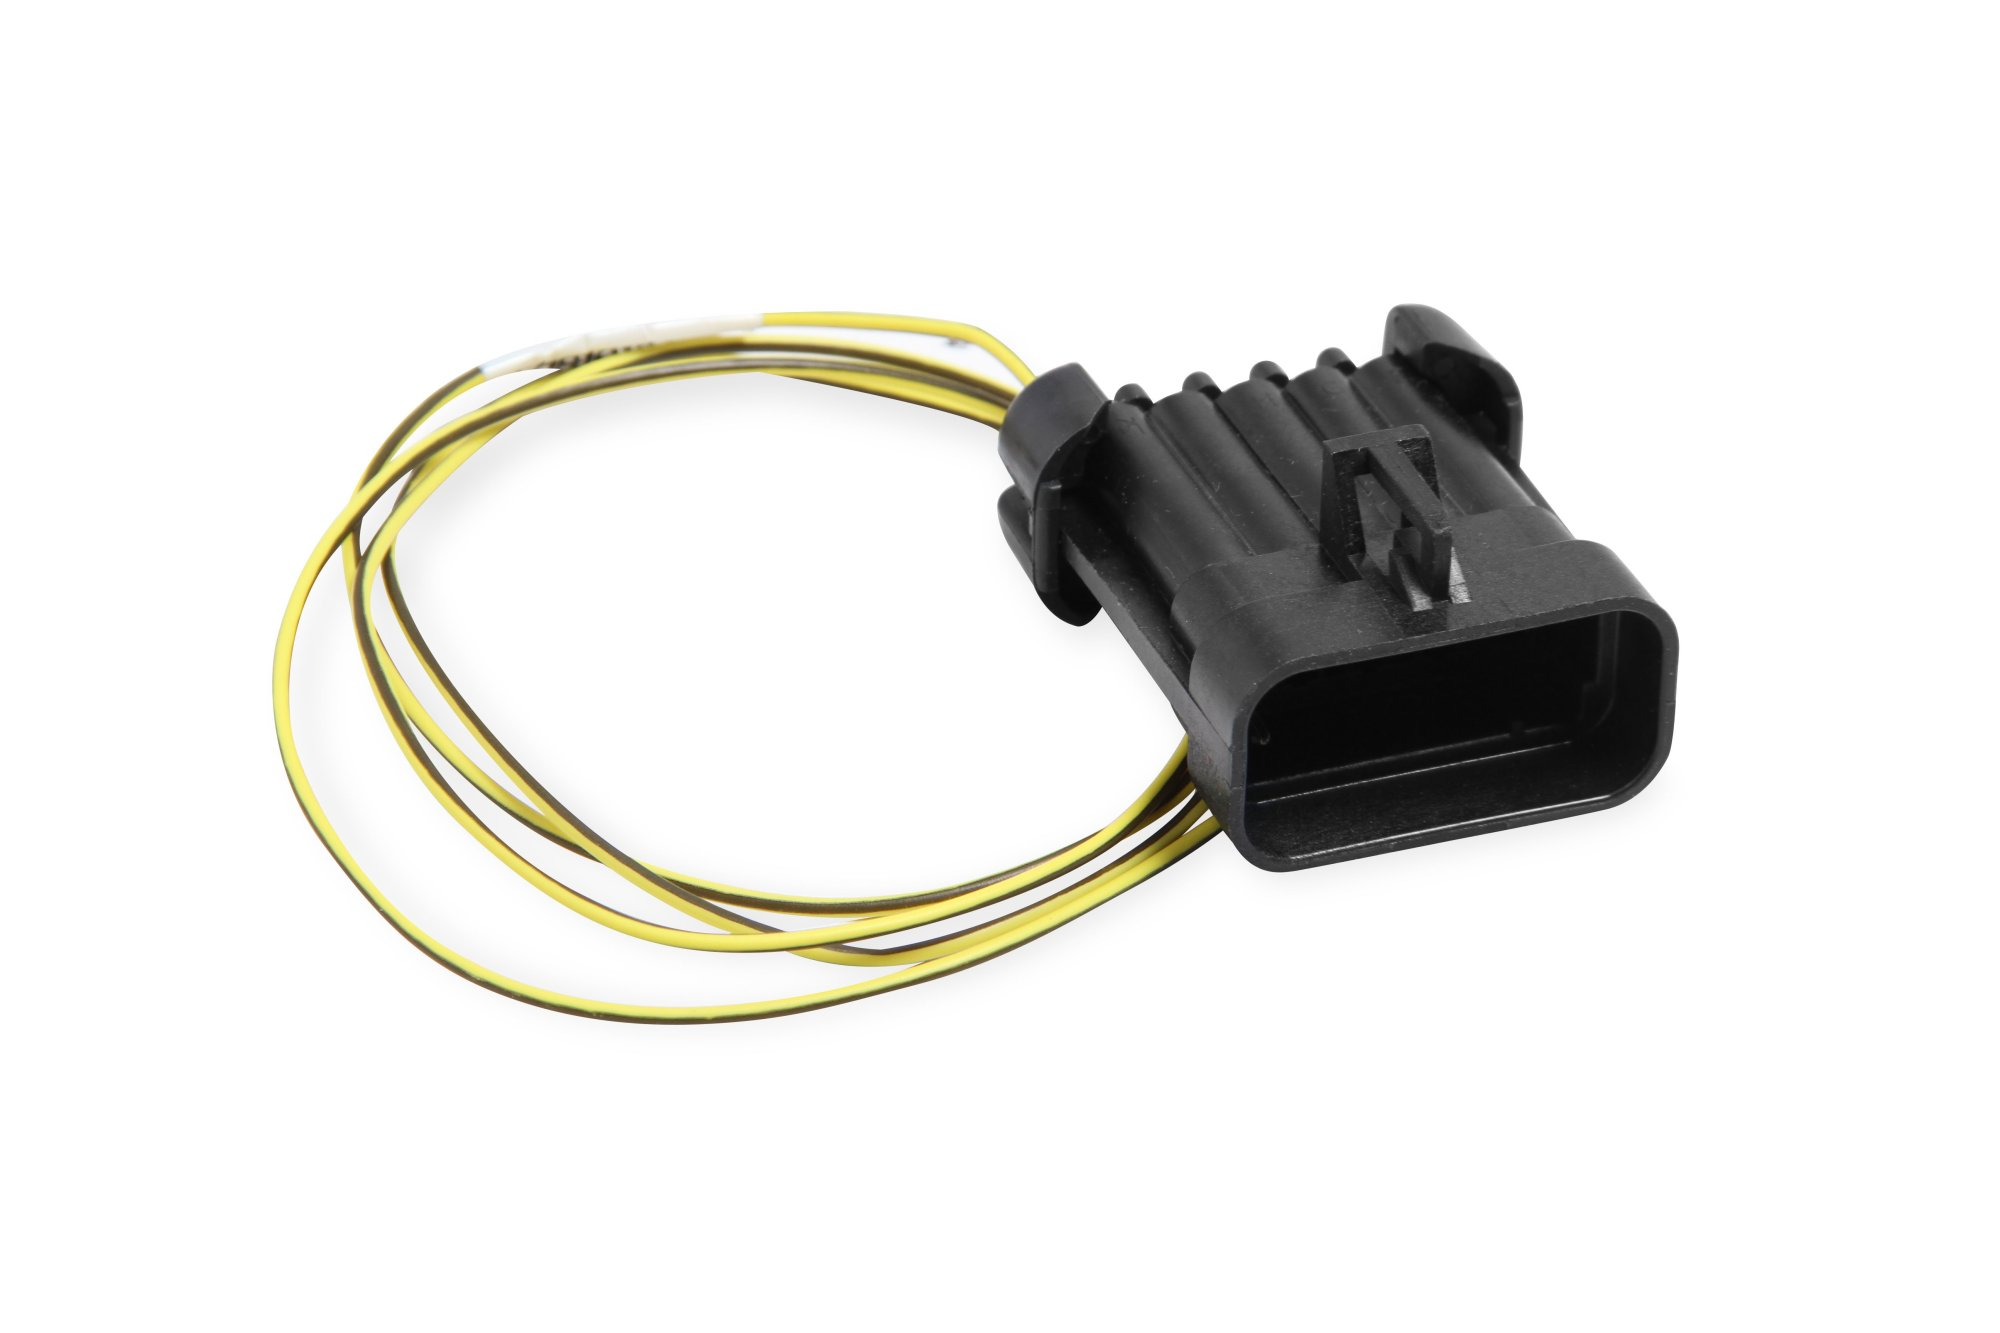 hight resolution of 558 302 tach input ignition adapter image